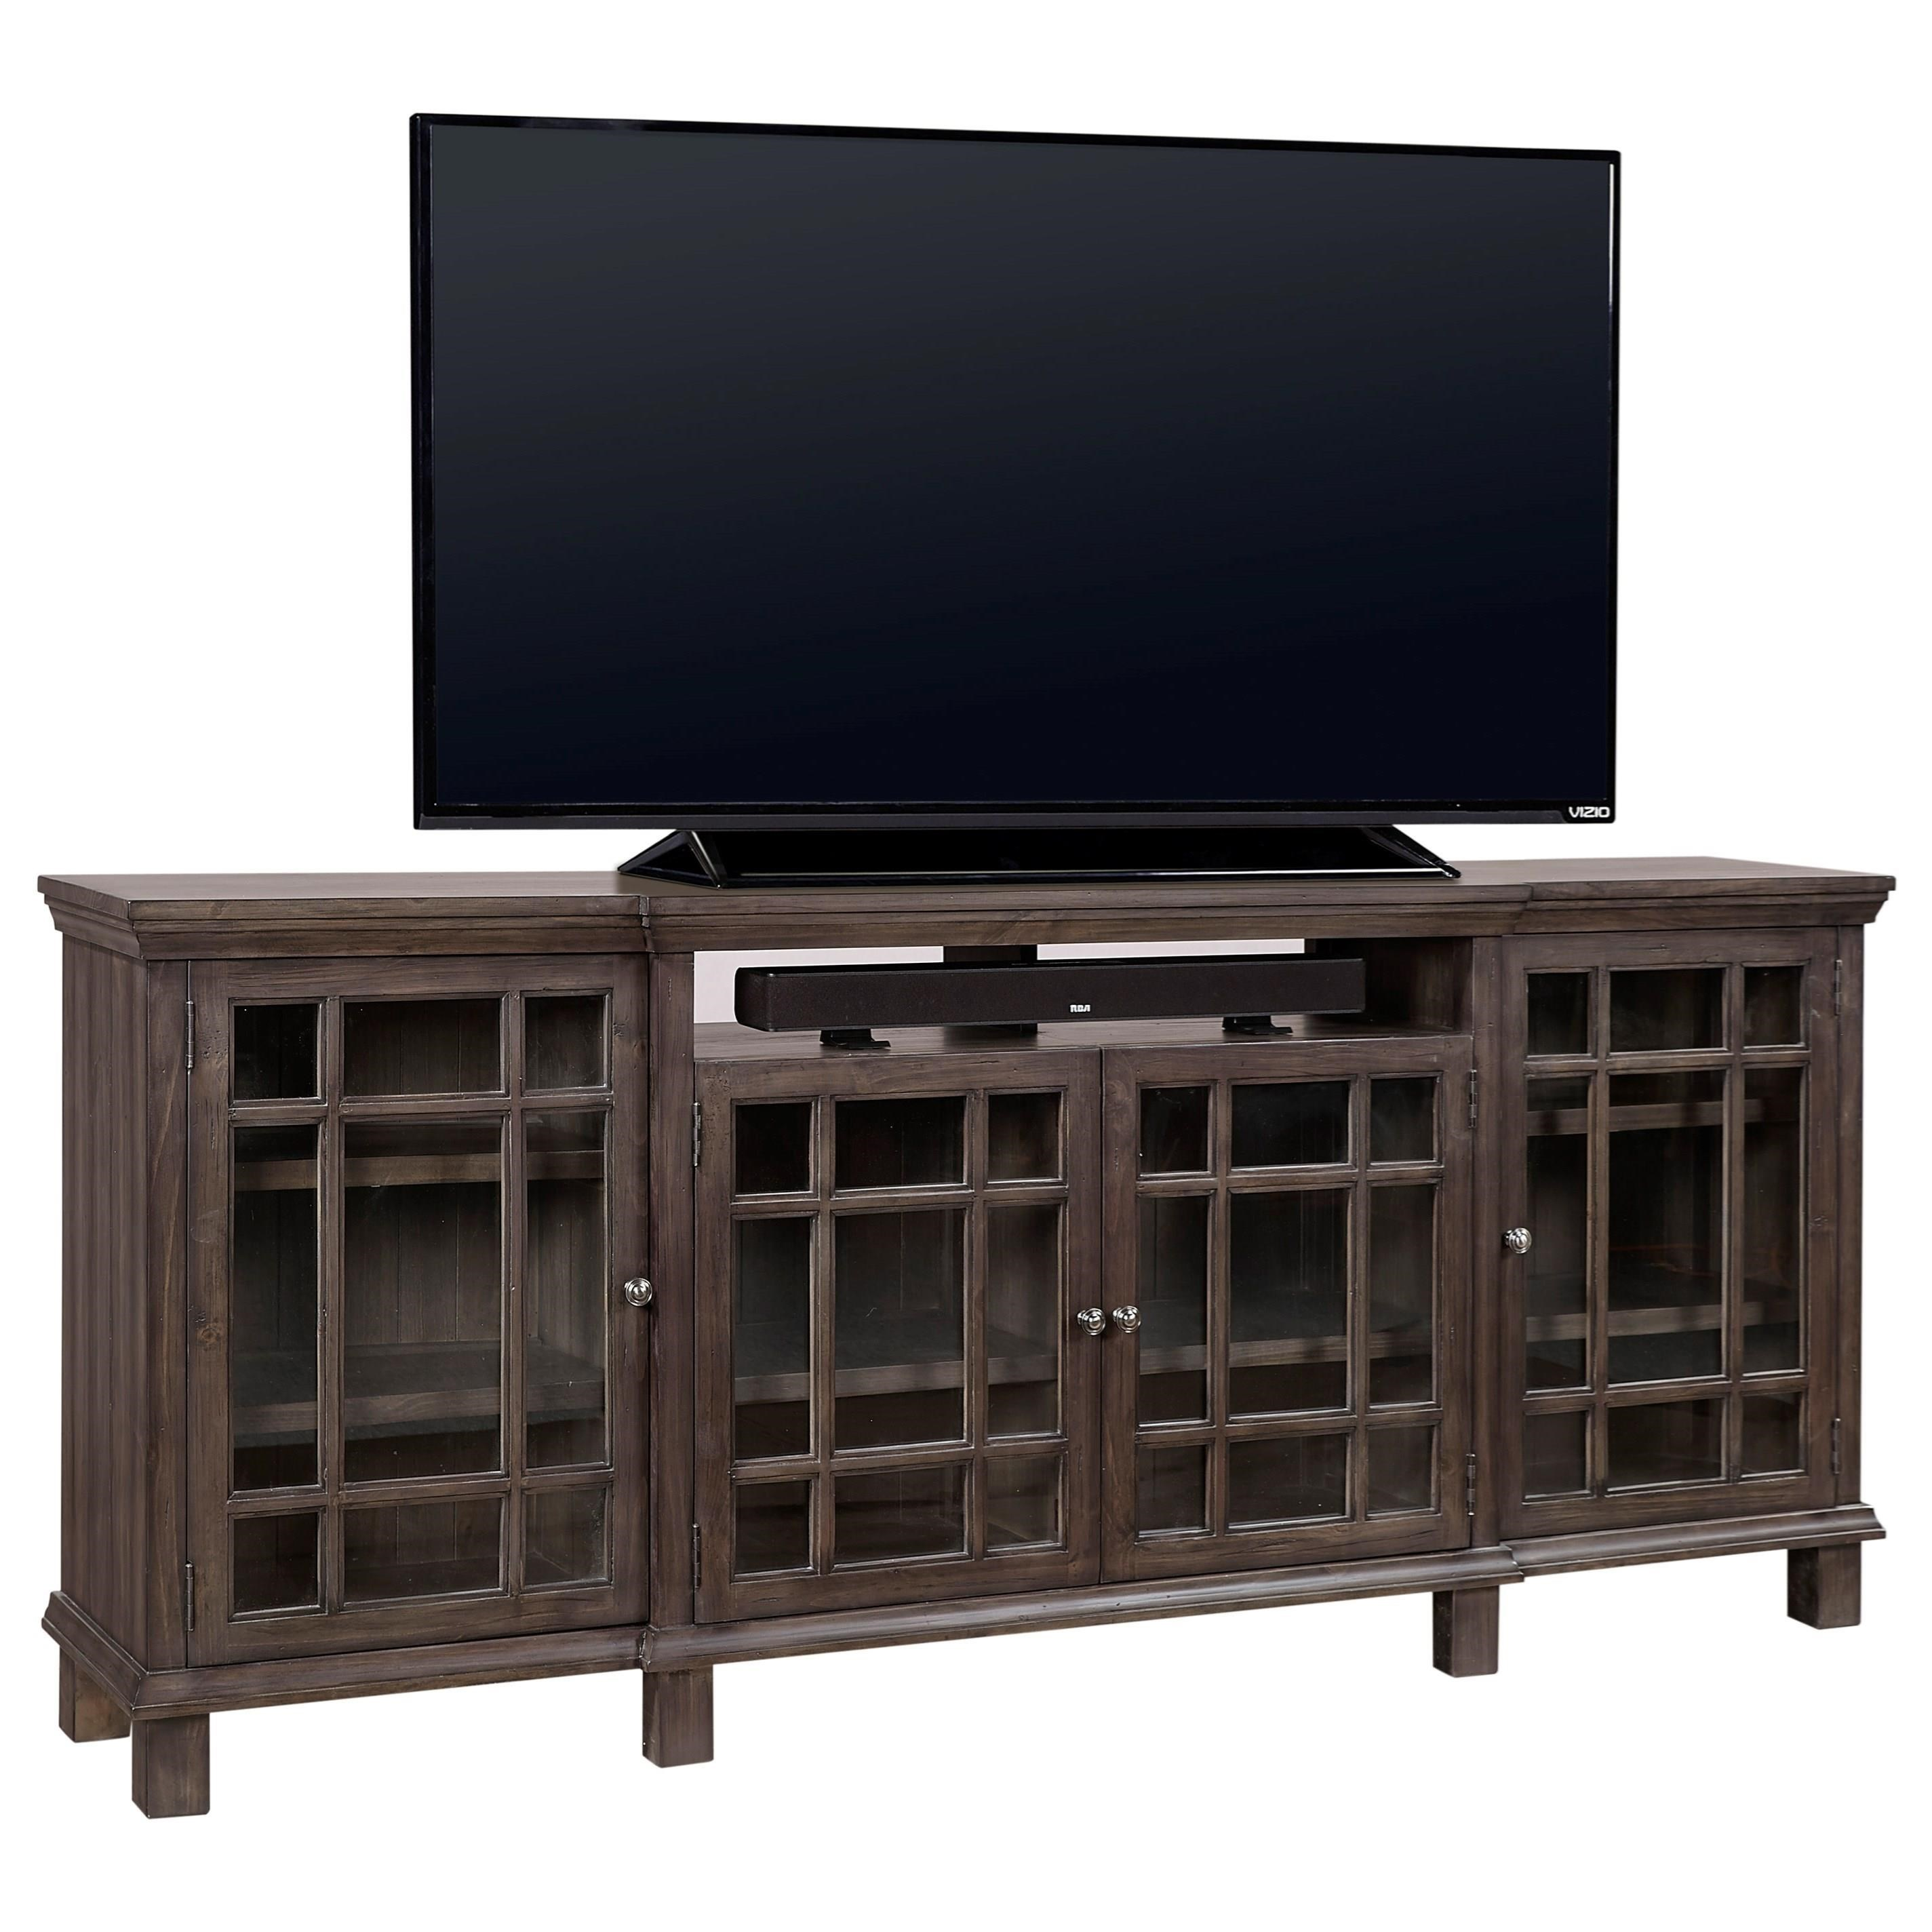 "Aspenhome Preferences 84"" Console  - Item Number: I44-284-SHI"